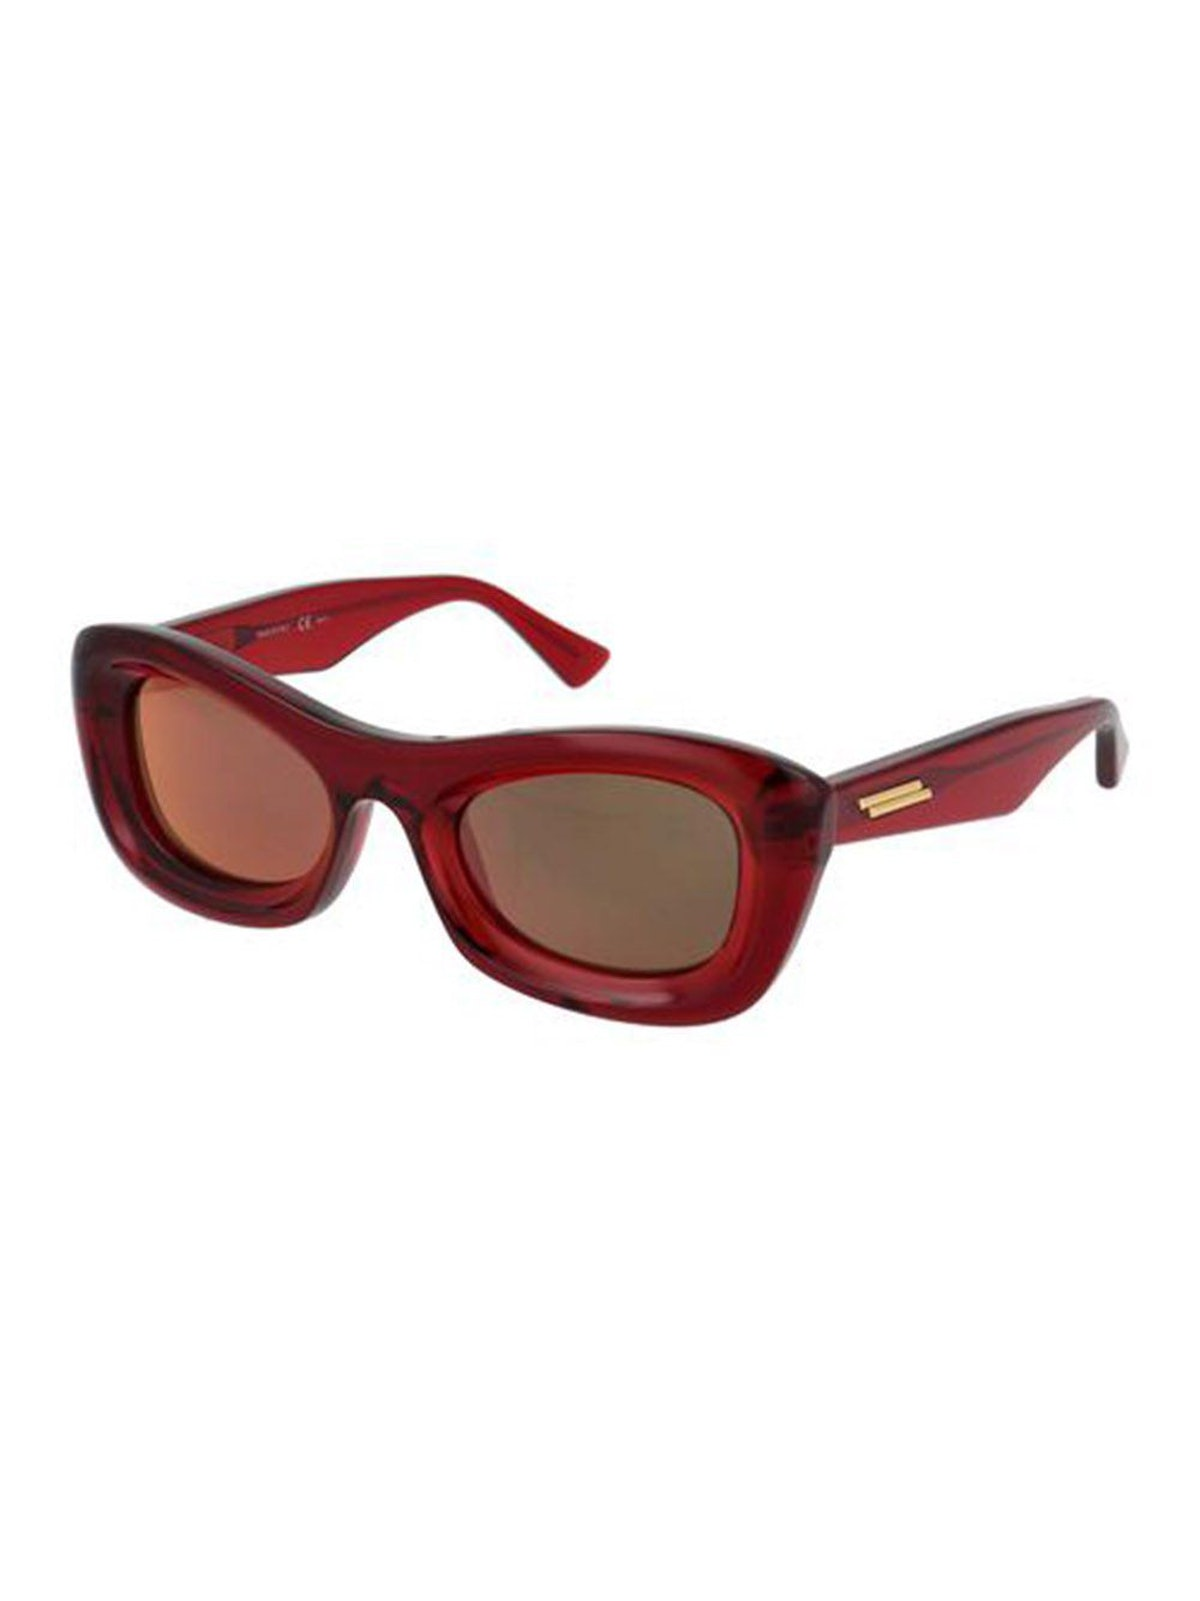 Thick Acetate Clear Sunglasses: image 1